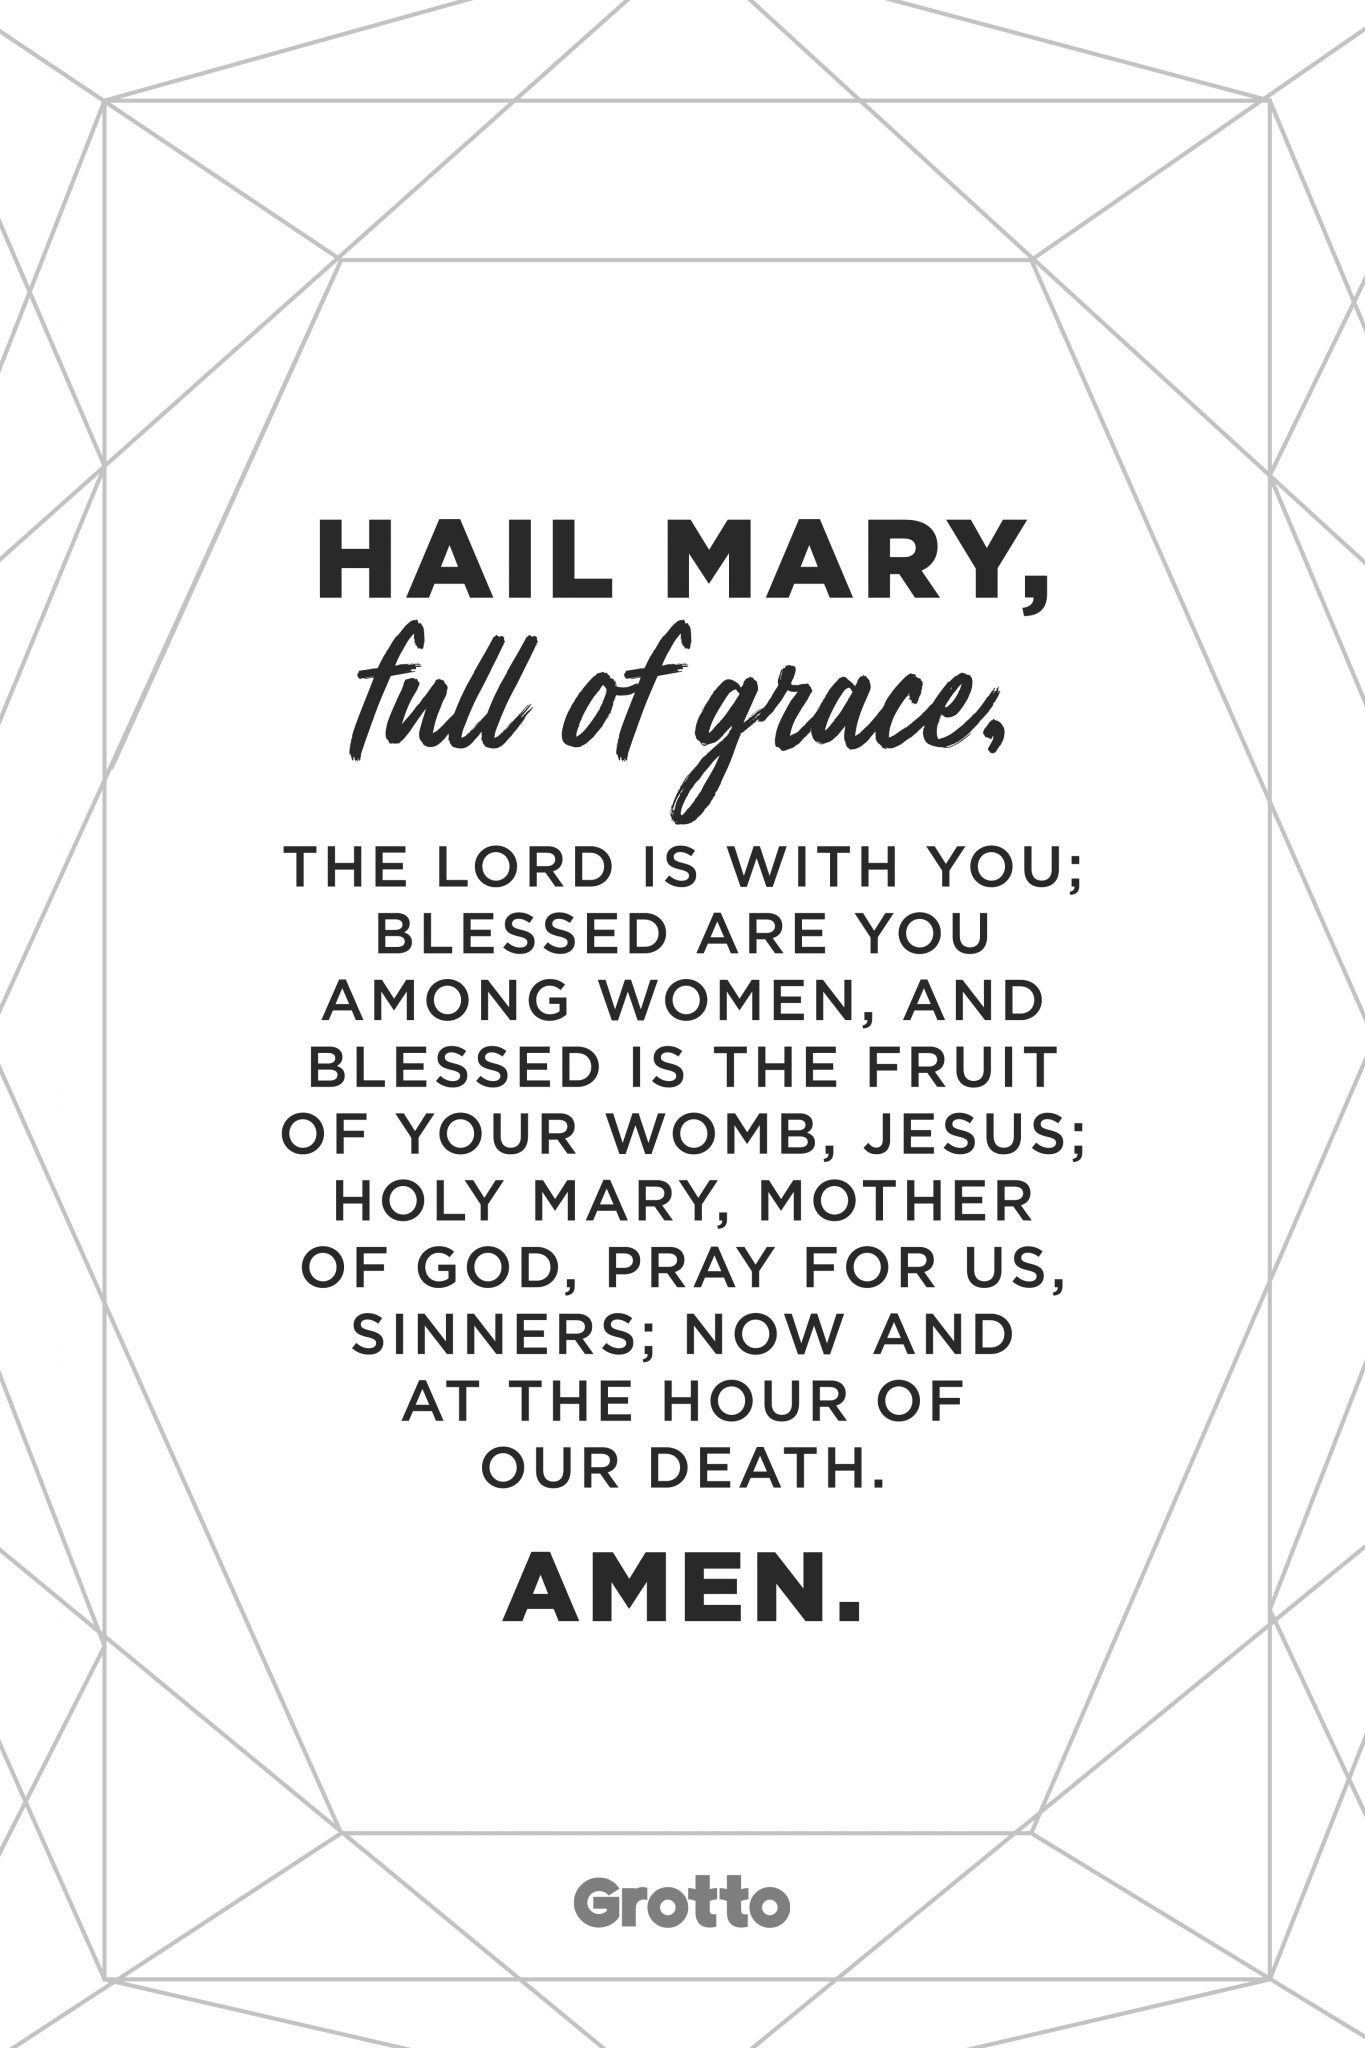 """Grotto prayer graphic of the """"Hail Mary"""" prayer. The graphic reads, """"Hail Mary, full of grace, the Lord is with you; blessed are you among women, and blessed is the fruit of your womb, Jesus; Holy Mary, Mother of God, pray for us, sinners; now and at the hour of our death. Amen."""""""